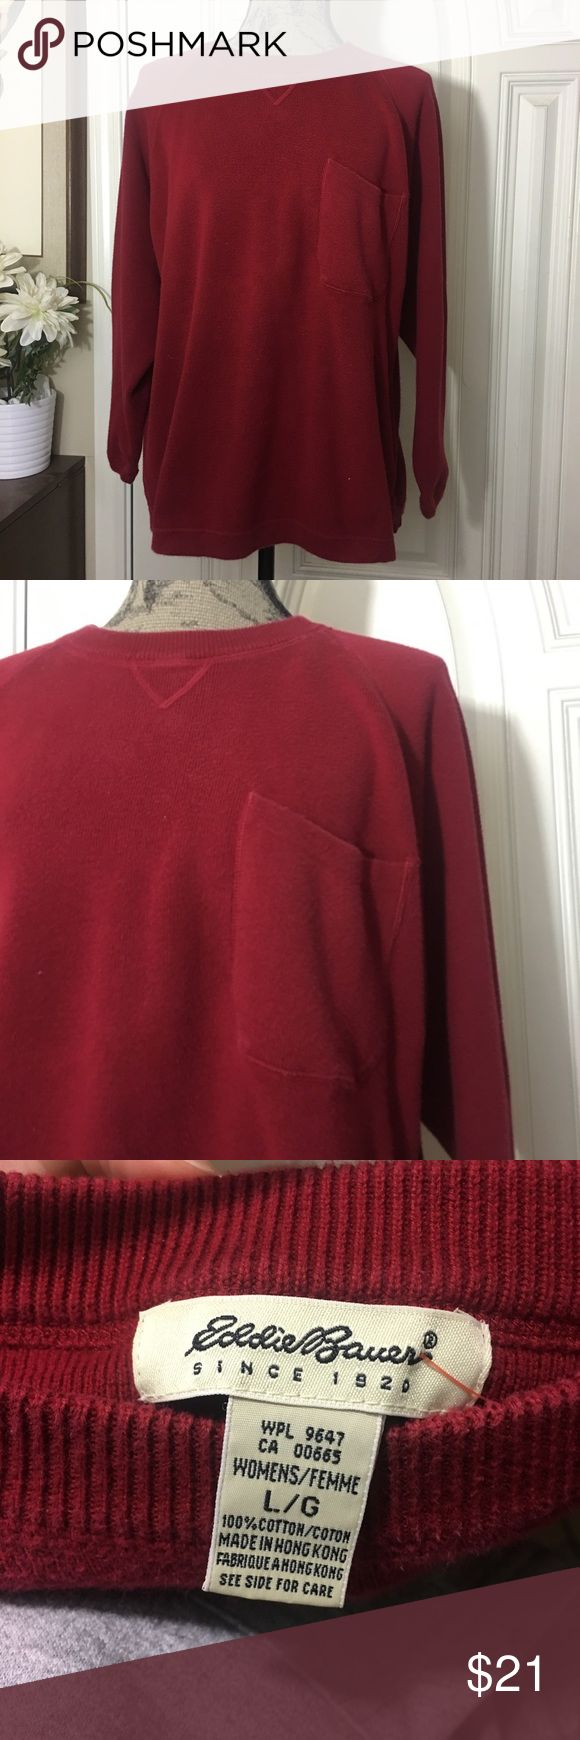 Eddie Bauer Men's Red Crewneck Sweater NEVER WORN! Brand new...perfect condition! Very thick and warm with pocket Eddie Bauer Sweaters Crewneck